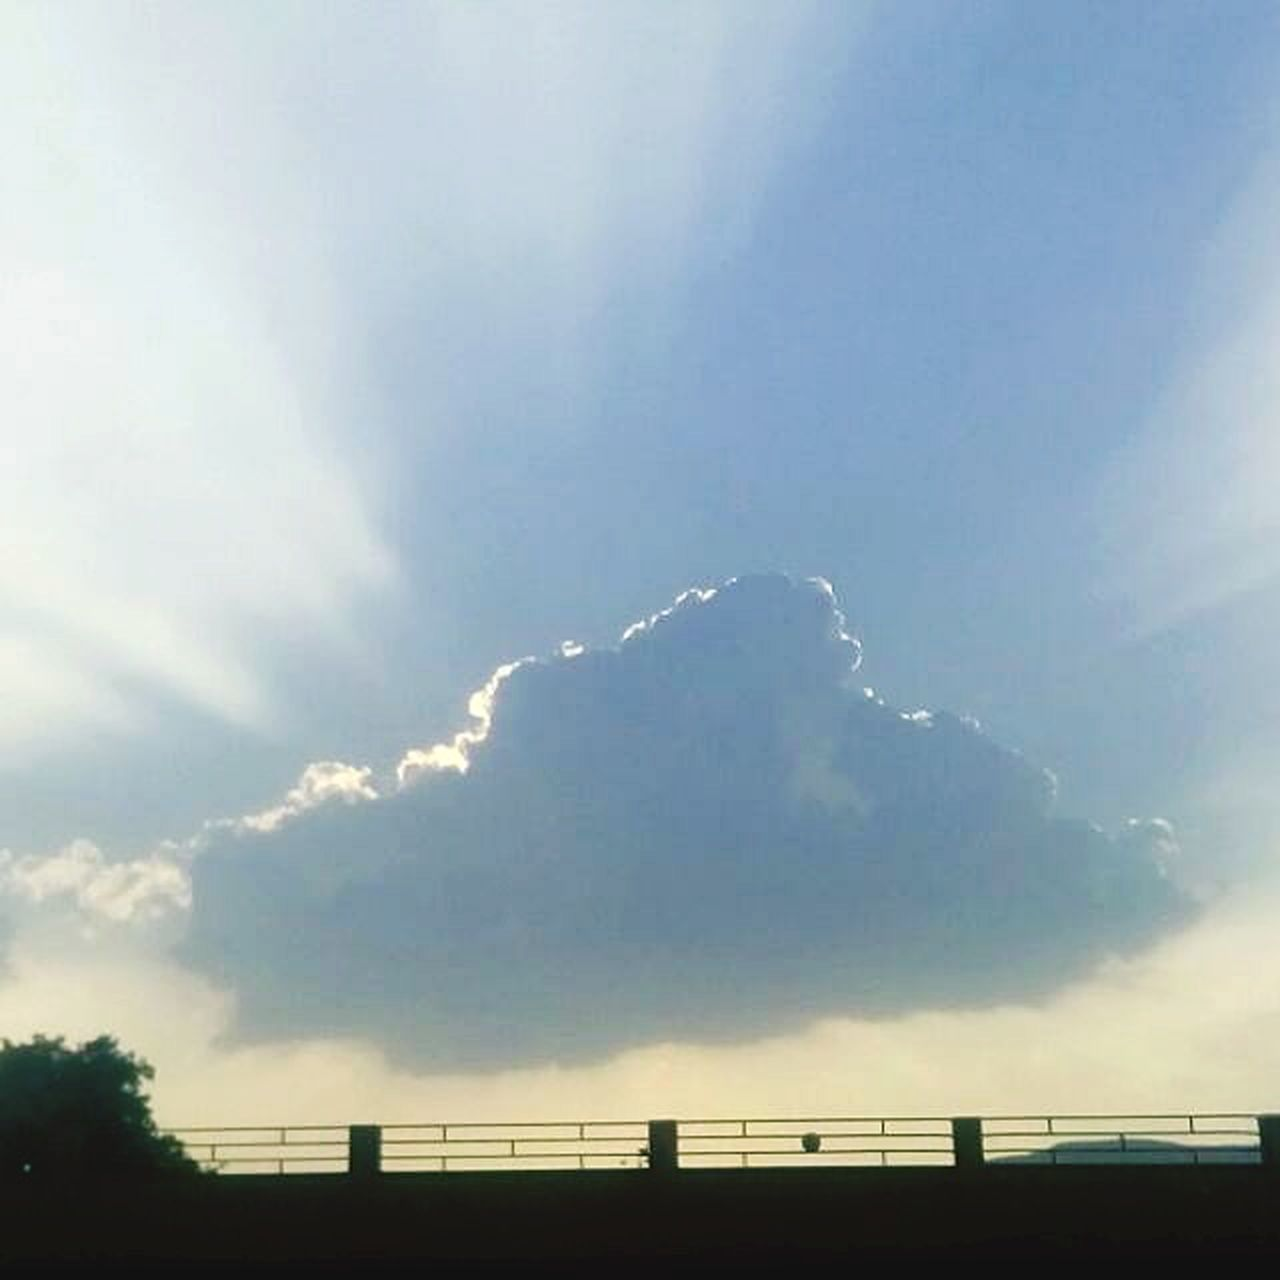 sky, cloud - sky, nature, no people, scenics, beauty in nature, outdoors, day, architecture